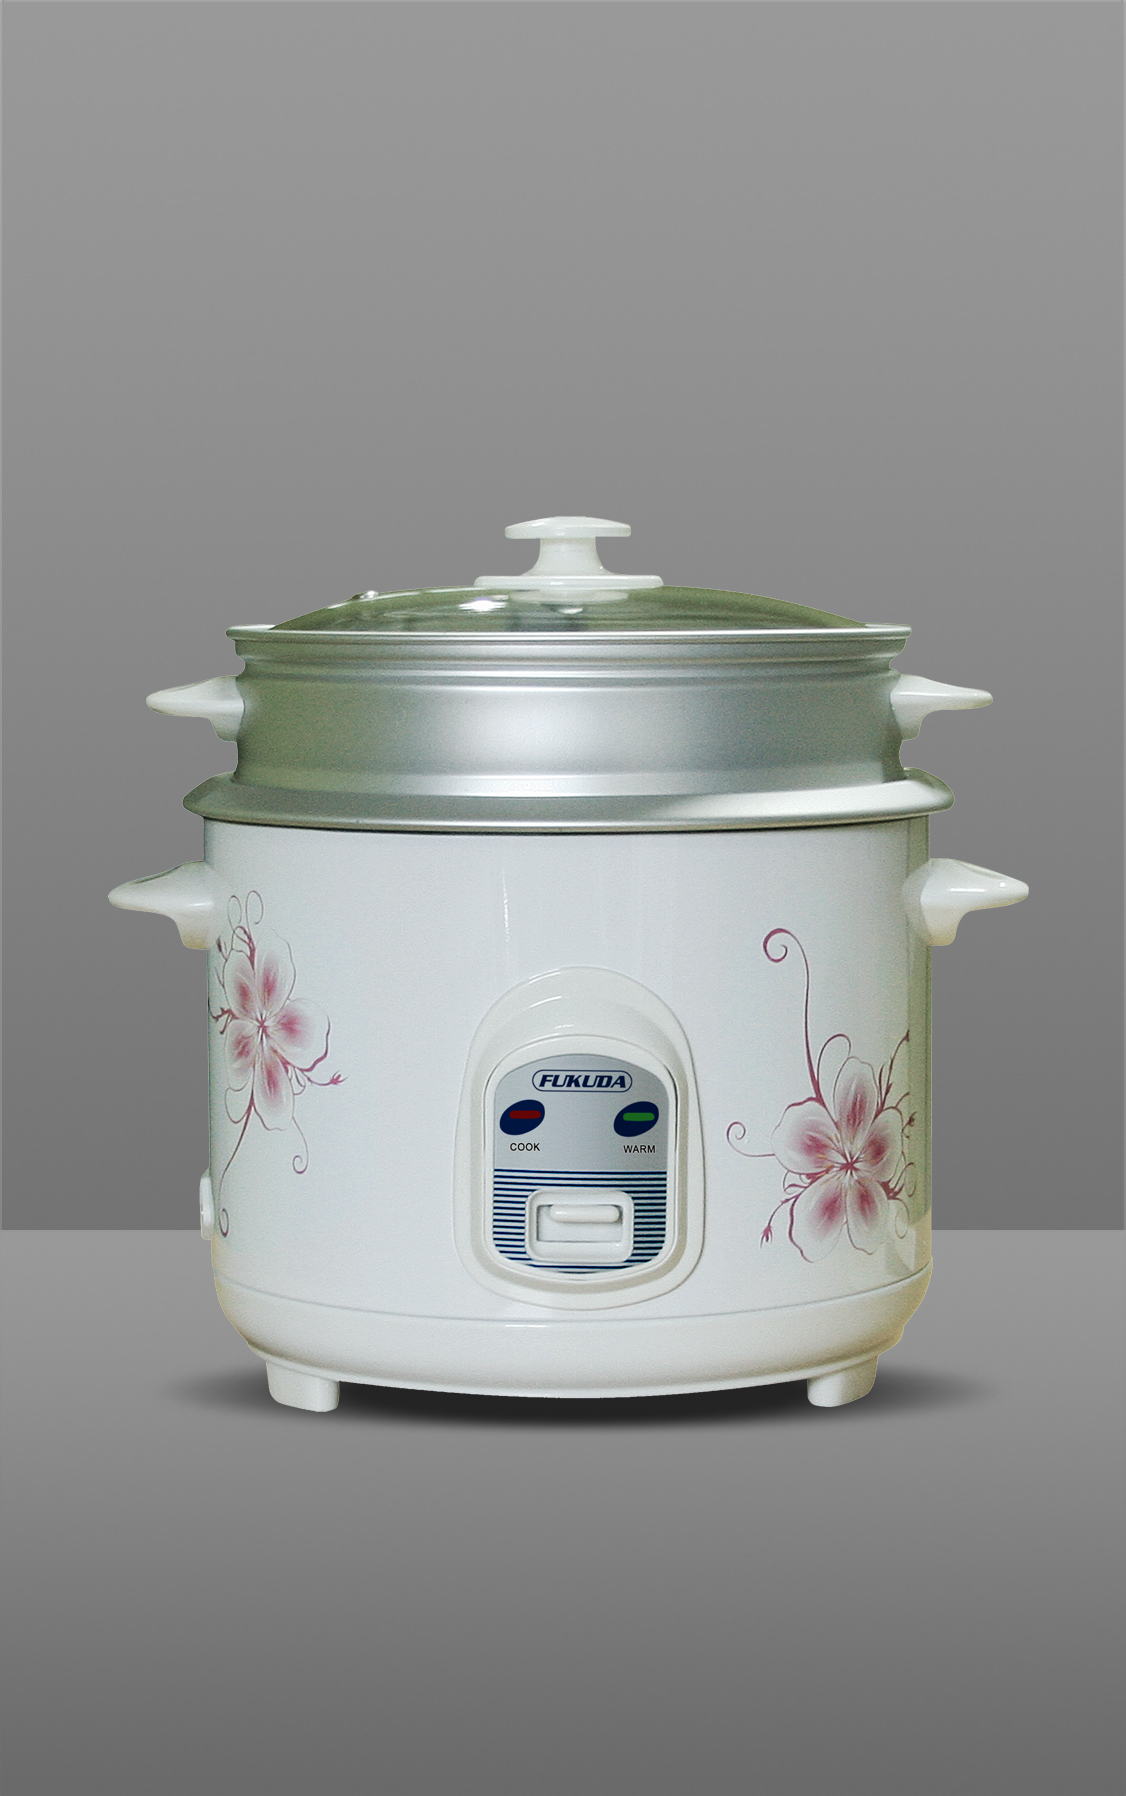 10 CUPS RICE COOKER WARMER & STEAMER 1.8L